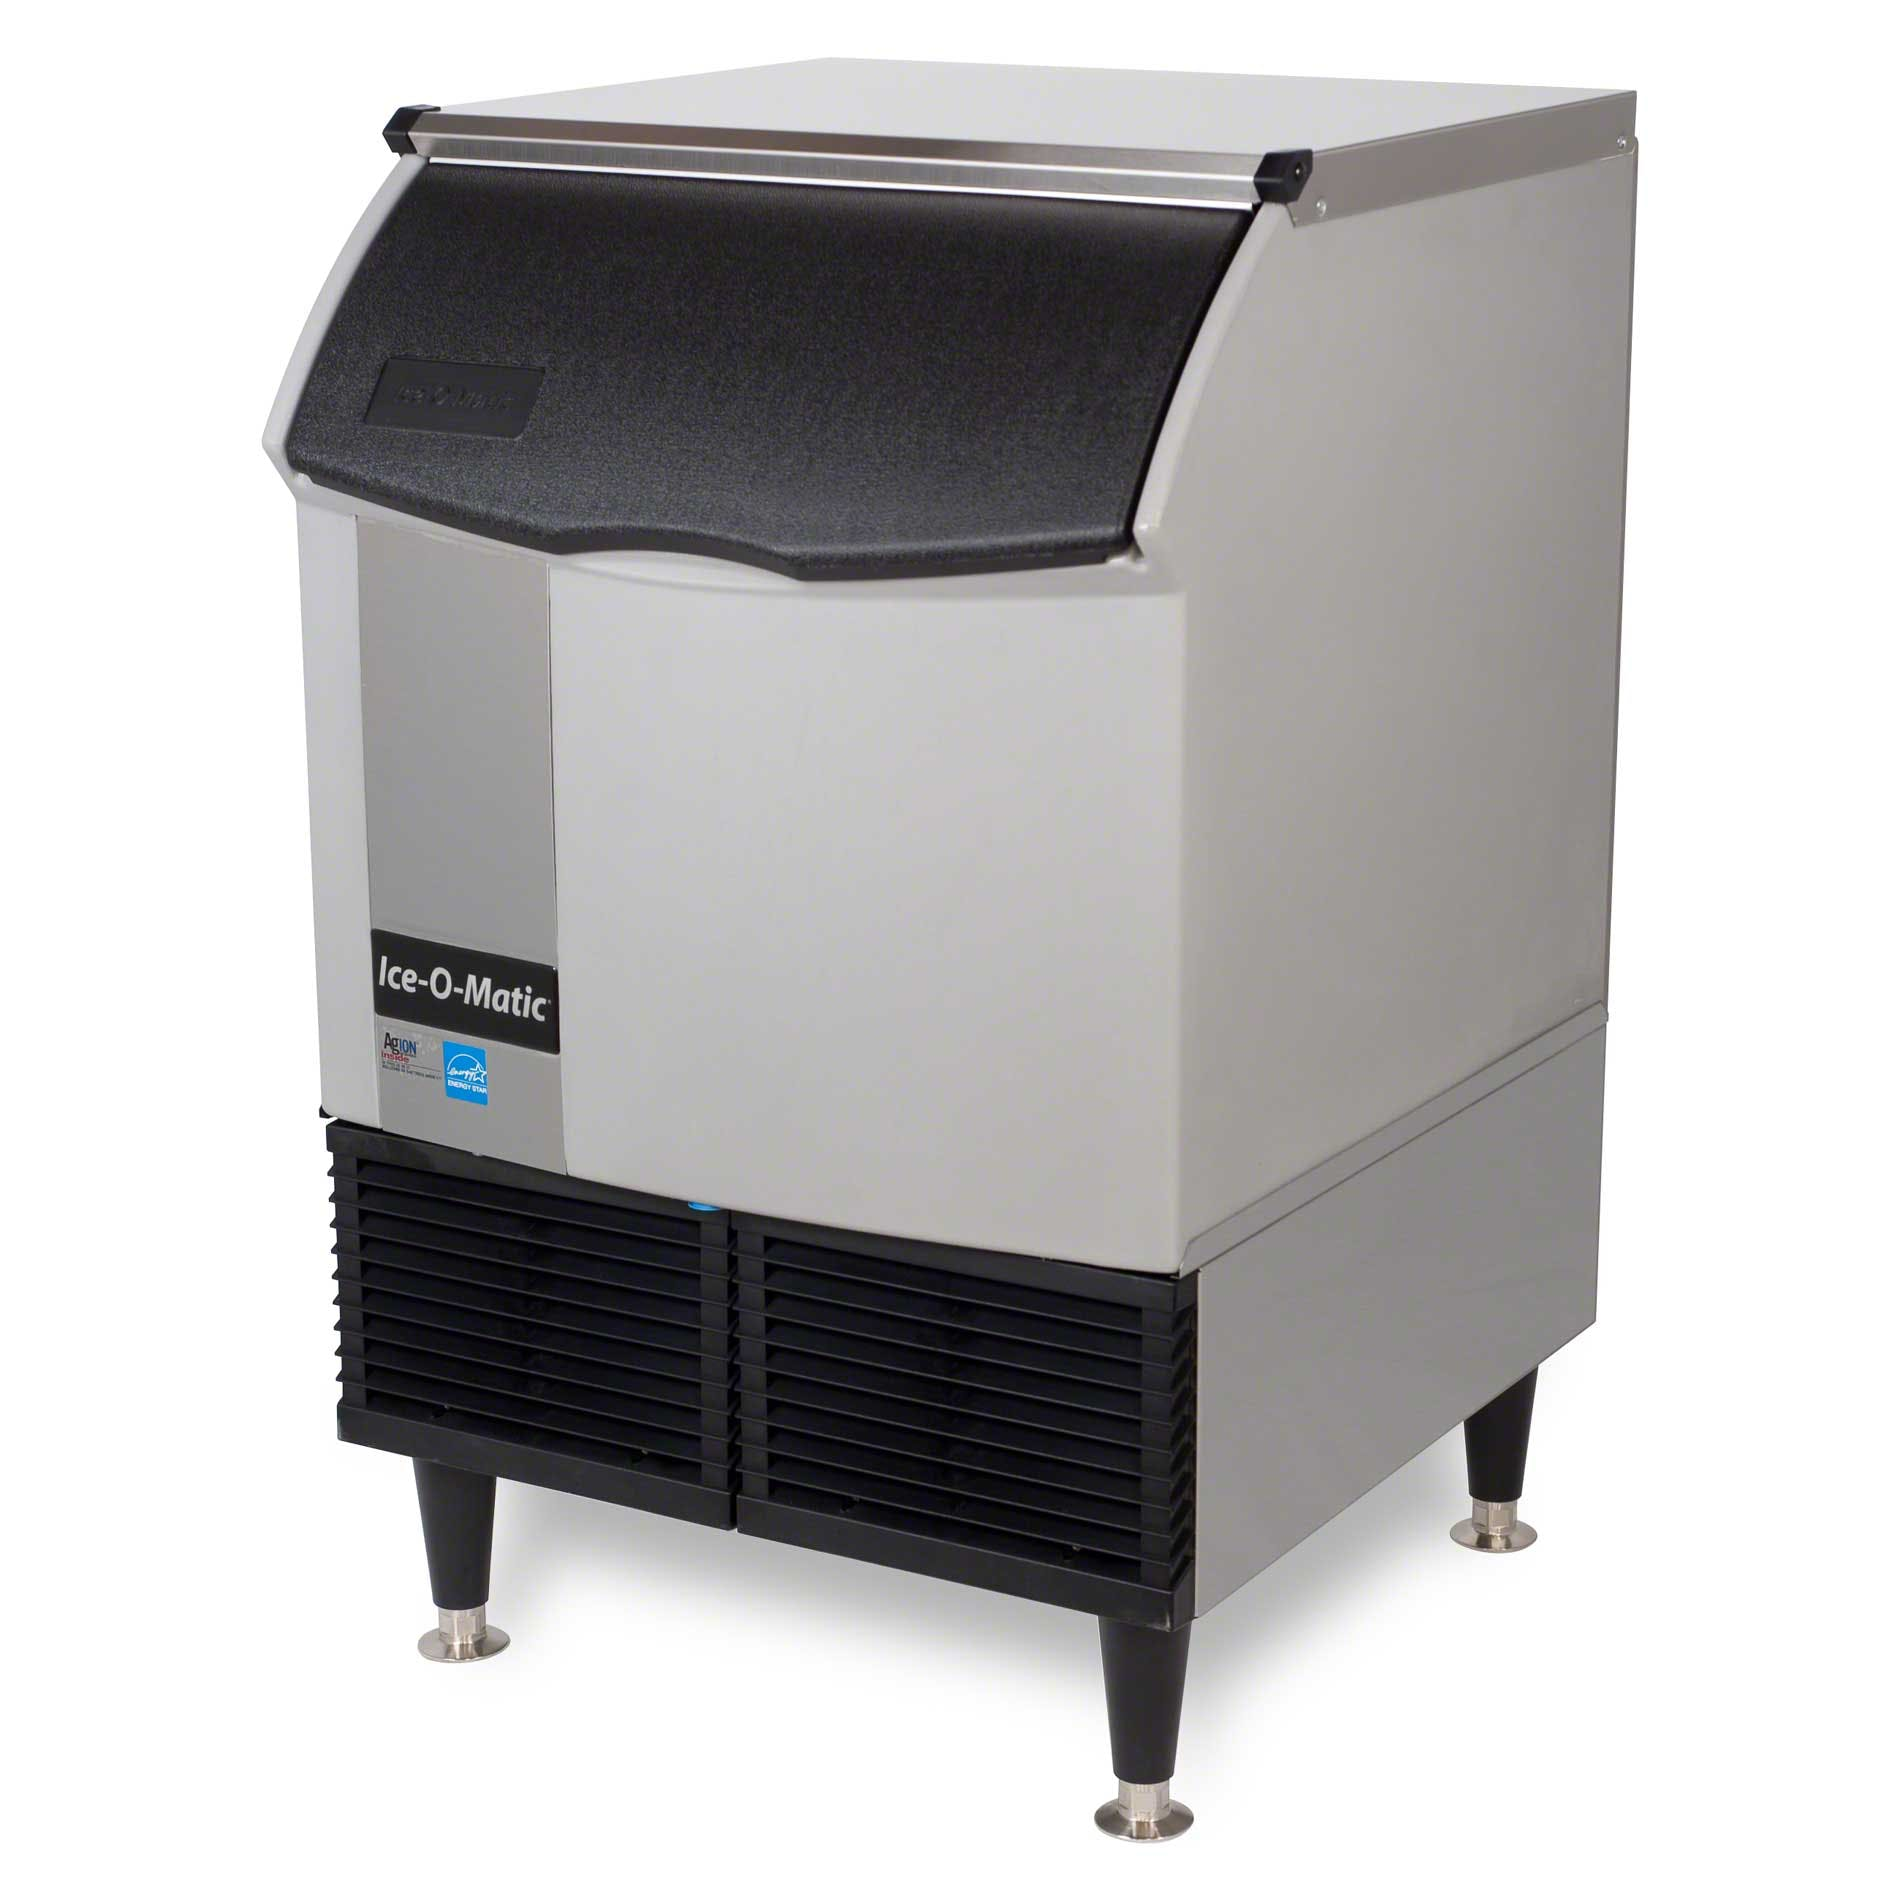 Ice-O-Matic - ICEU220HA 238 lb Self-Contained Half Cube Ice Machine Ice machine sold by Food Service Warehouse